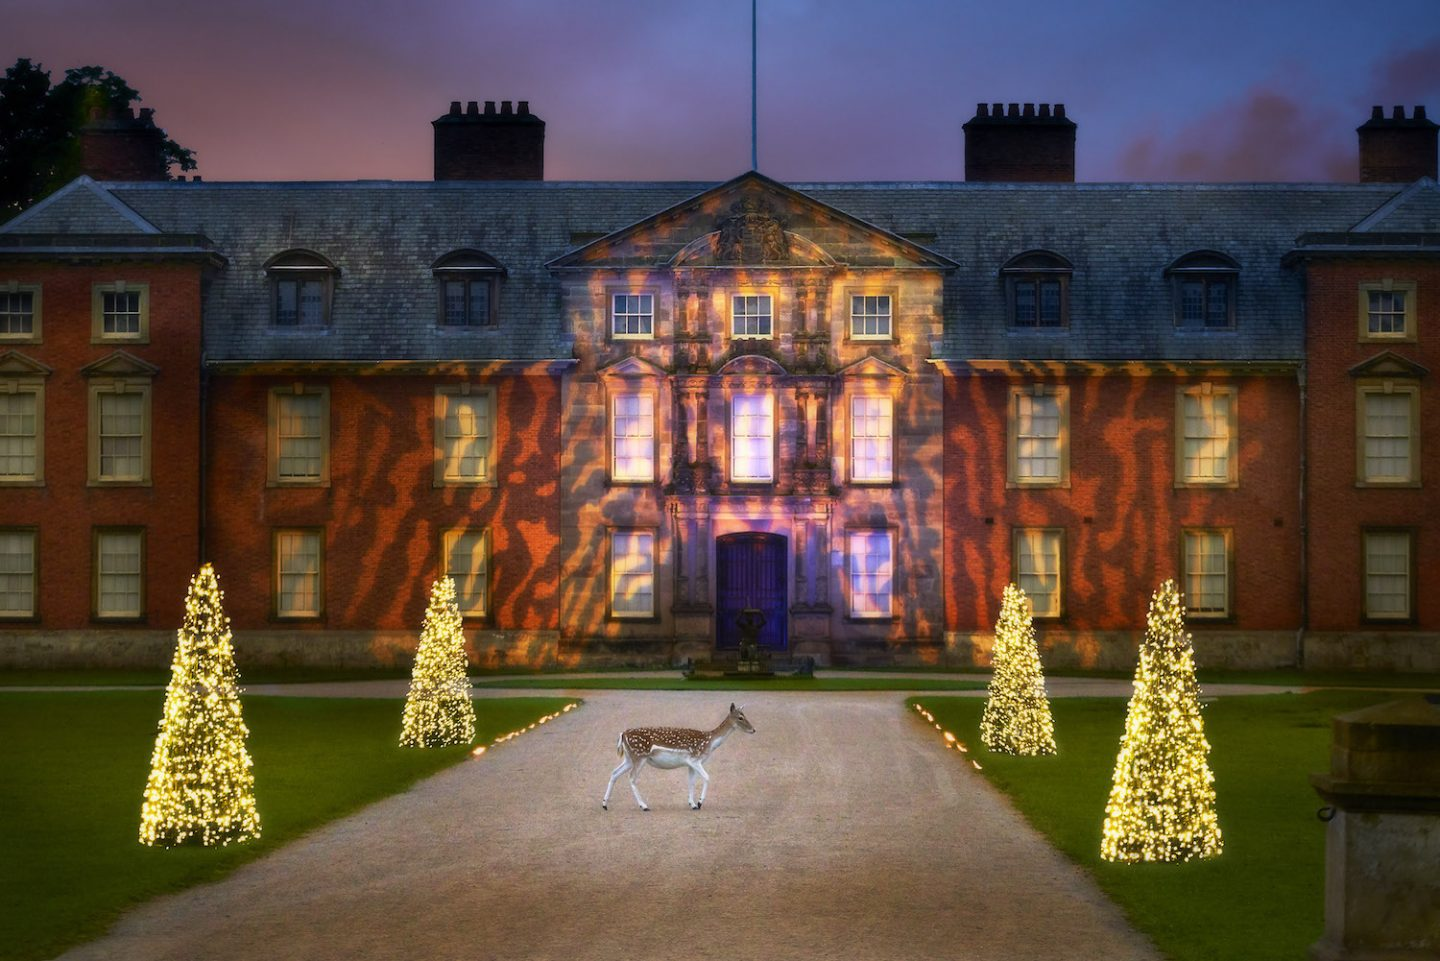 Dunham Massey's Magical Christmas after Dark Illuminated Trail